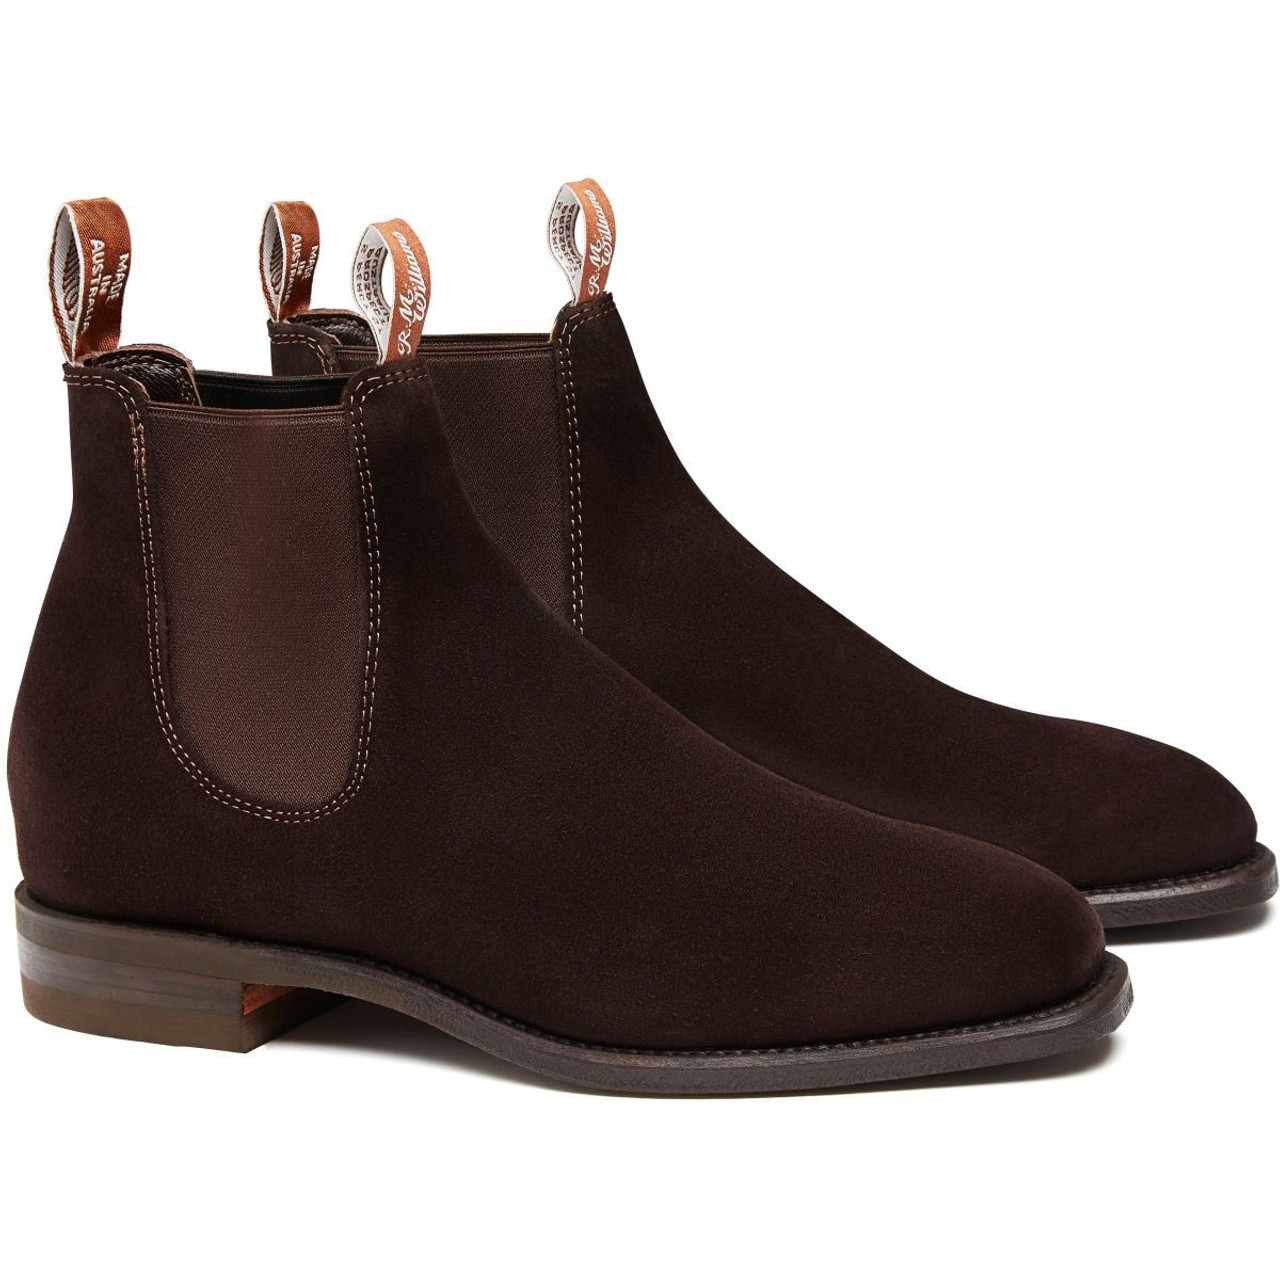 R.M. Williams Suede Comfort Craftsman Boots